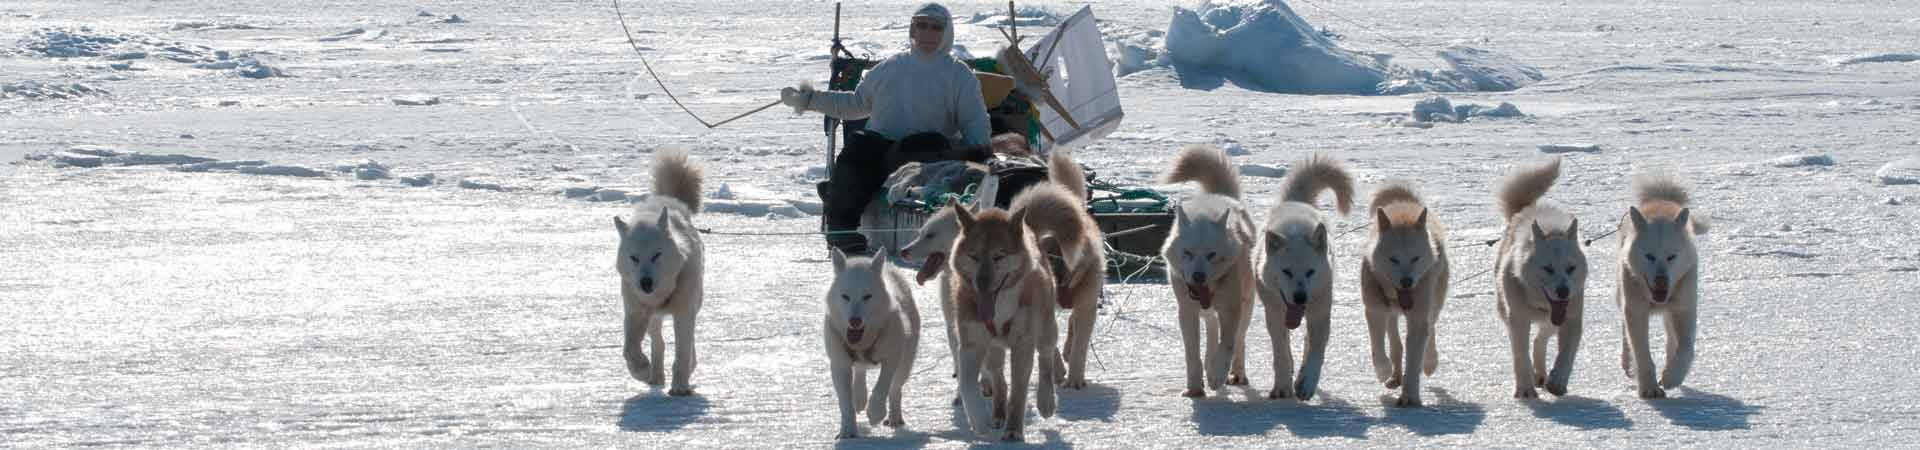 A dog sled driven by a native Greenlander with instrumentation that allows scientists to gather information while the hunter is on the ice